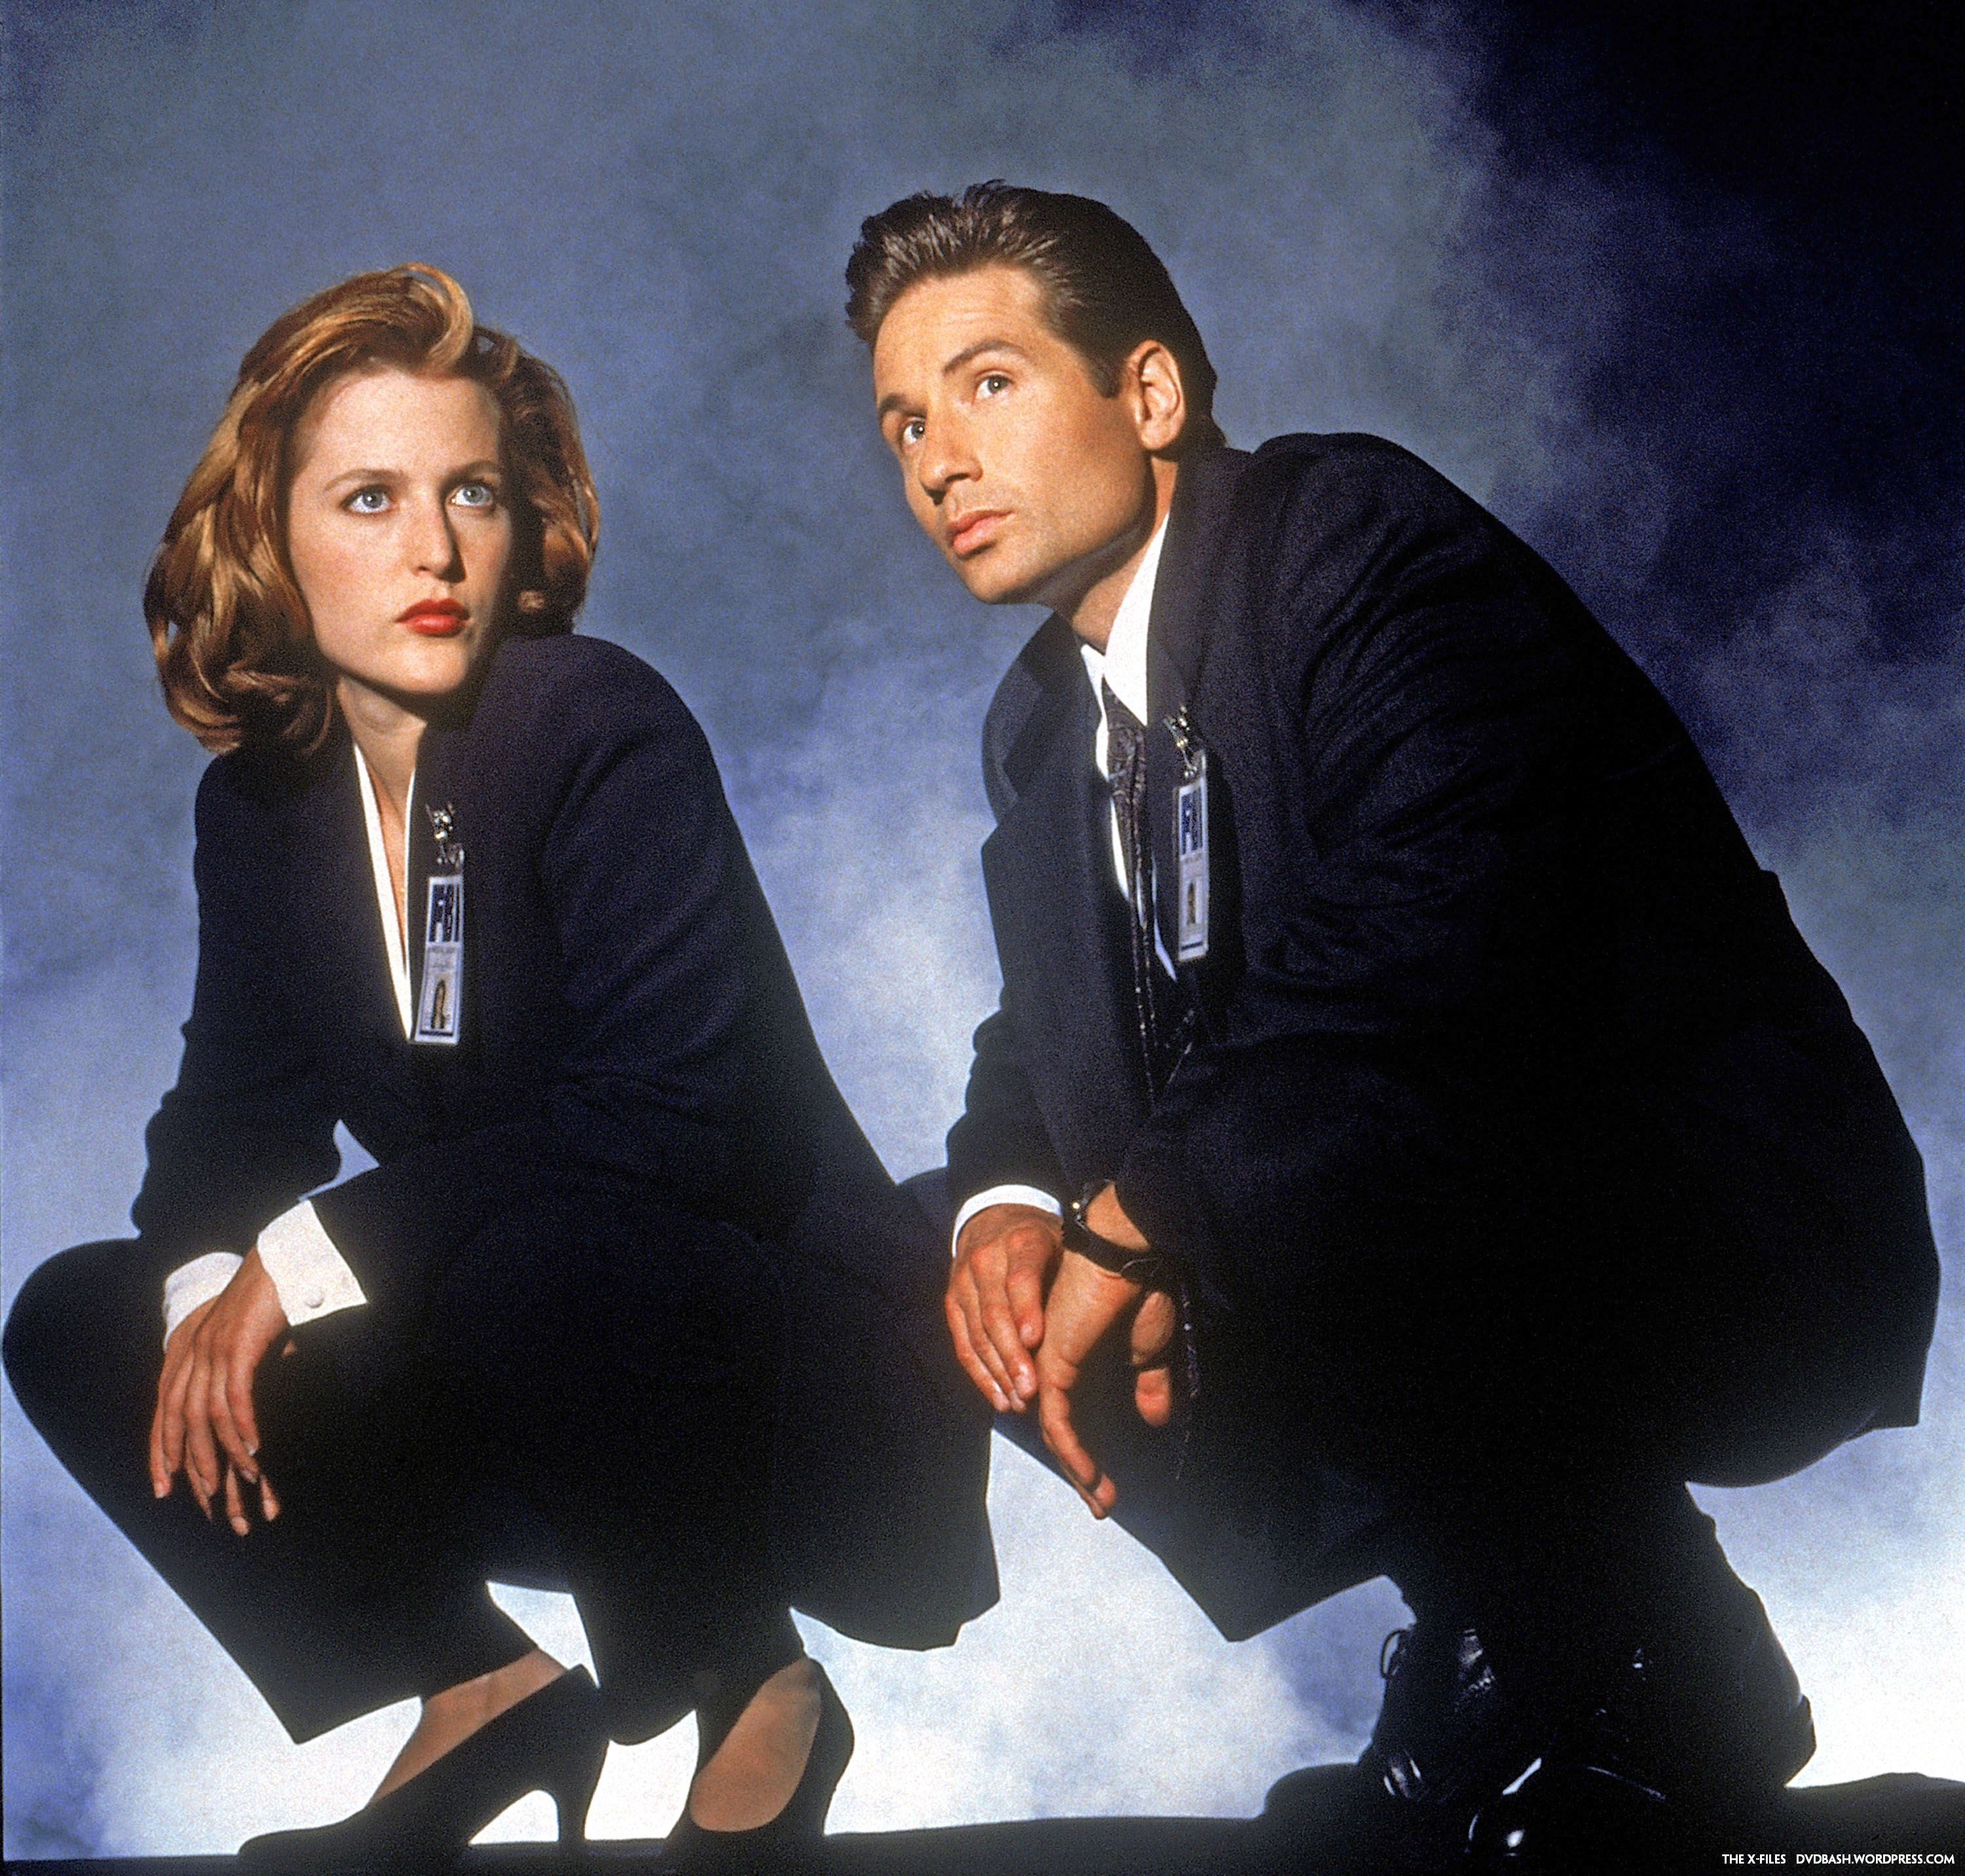 mulder and scully wallpaper   Google Search Nerd Love David 3000x2864